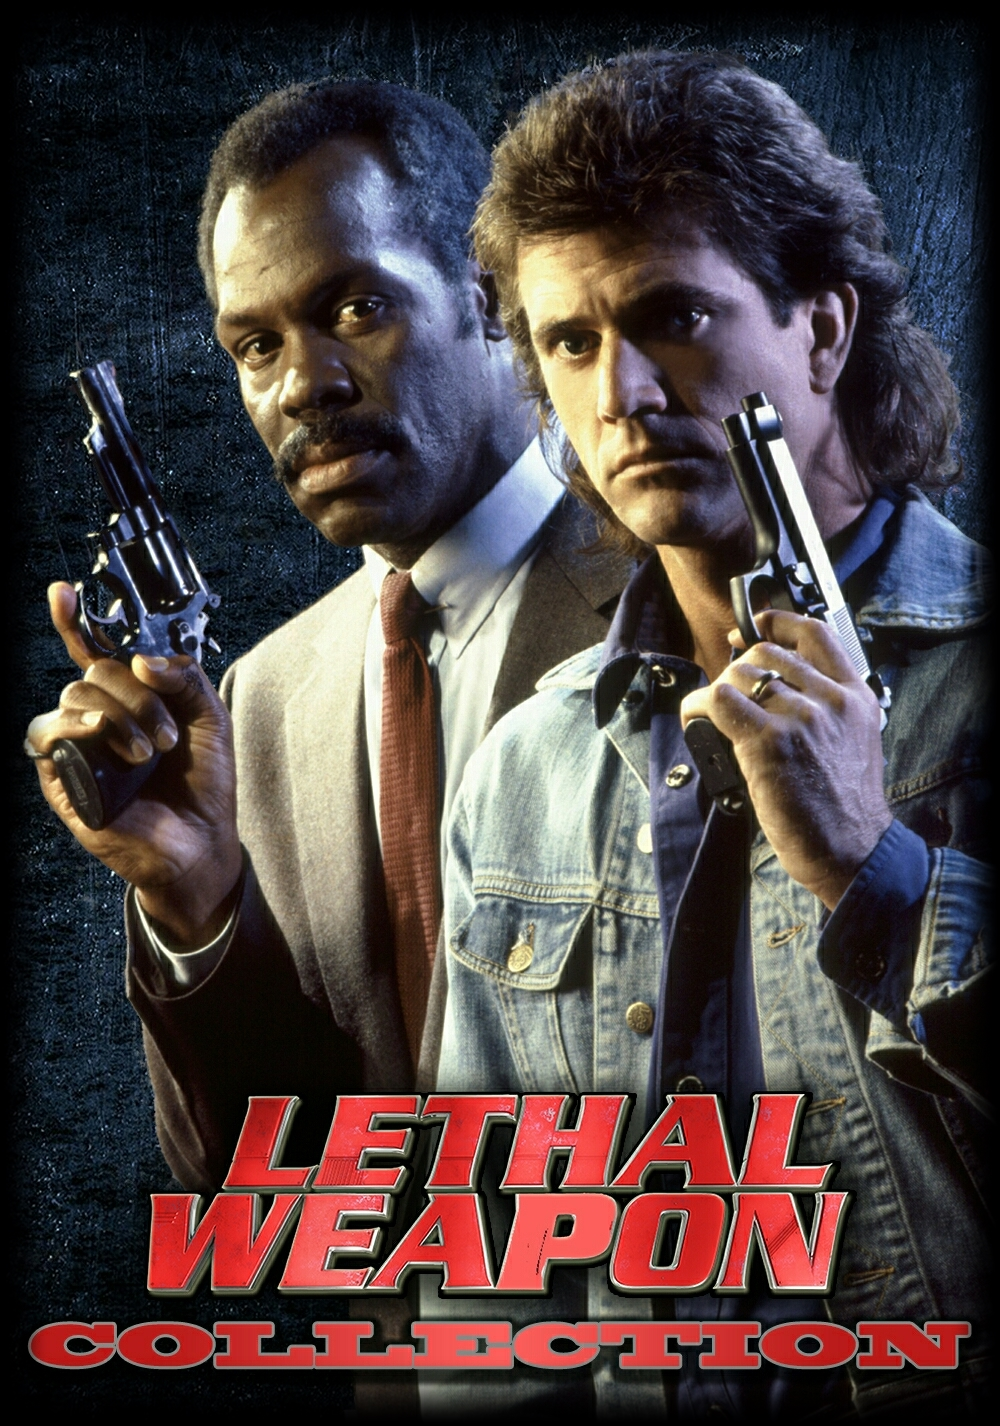 Stiahni si HD Filmy Smrtonosna zbran / Lethal Weapon - Collection (1987-1998)(CZ/EN)[1080p][HEVC] = CSFD 88%